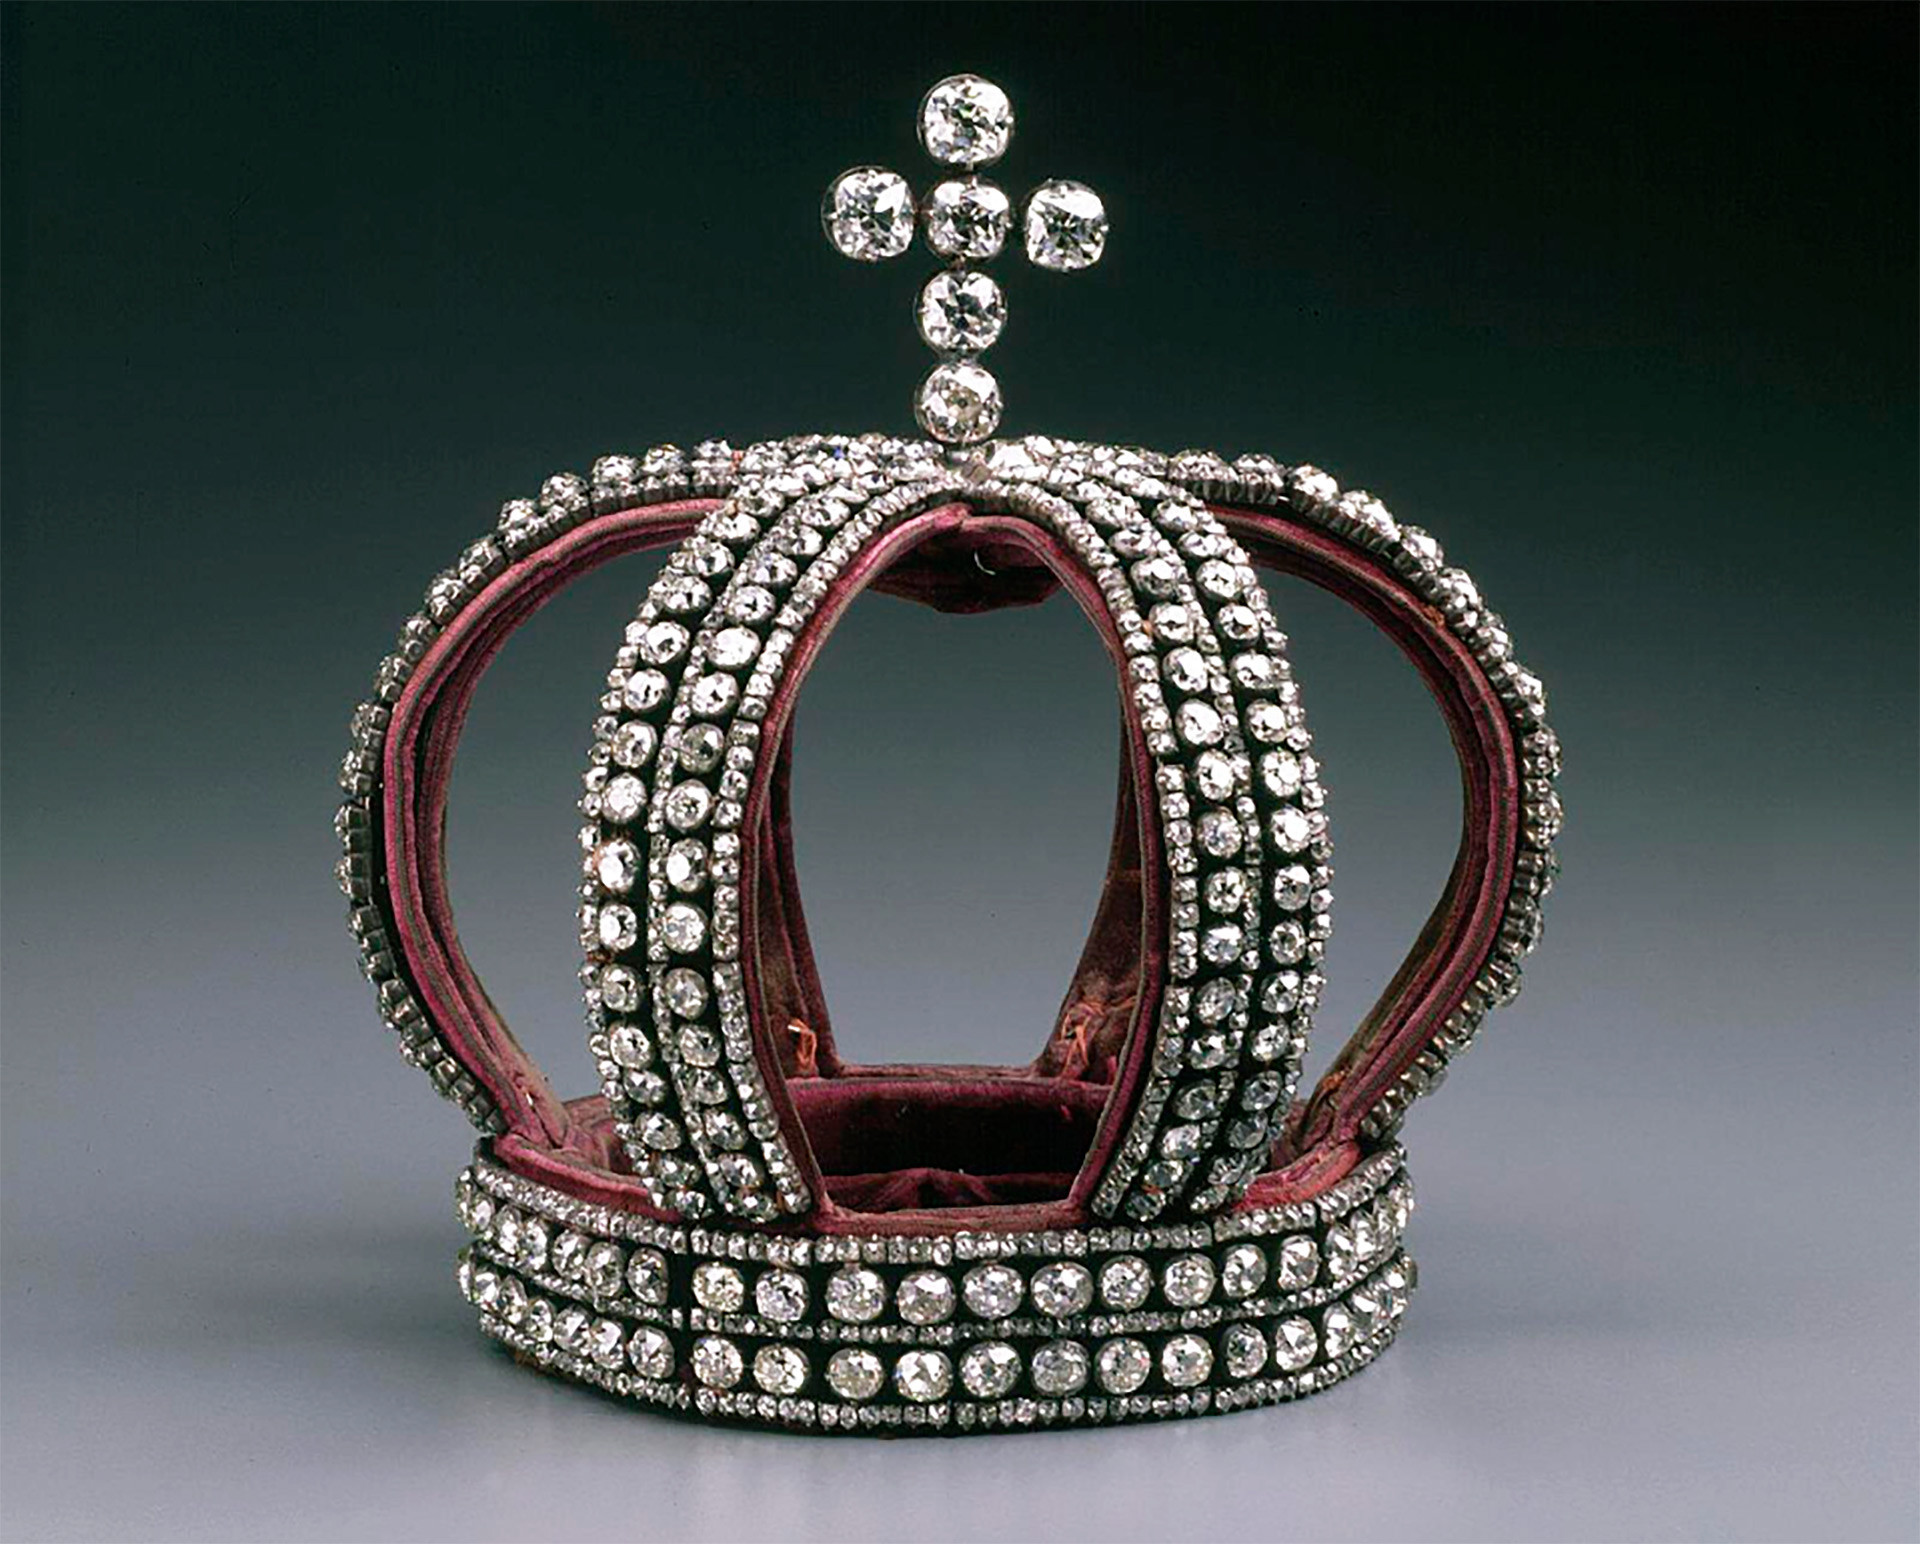 The wedding crown of Russia.